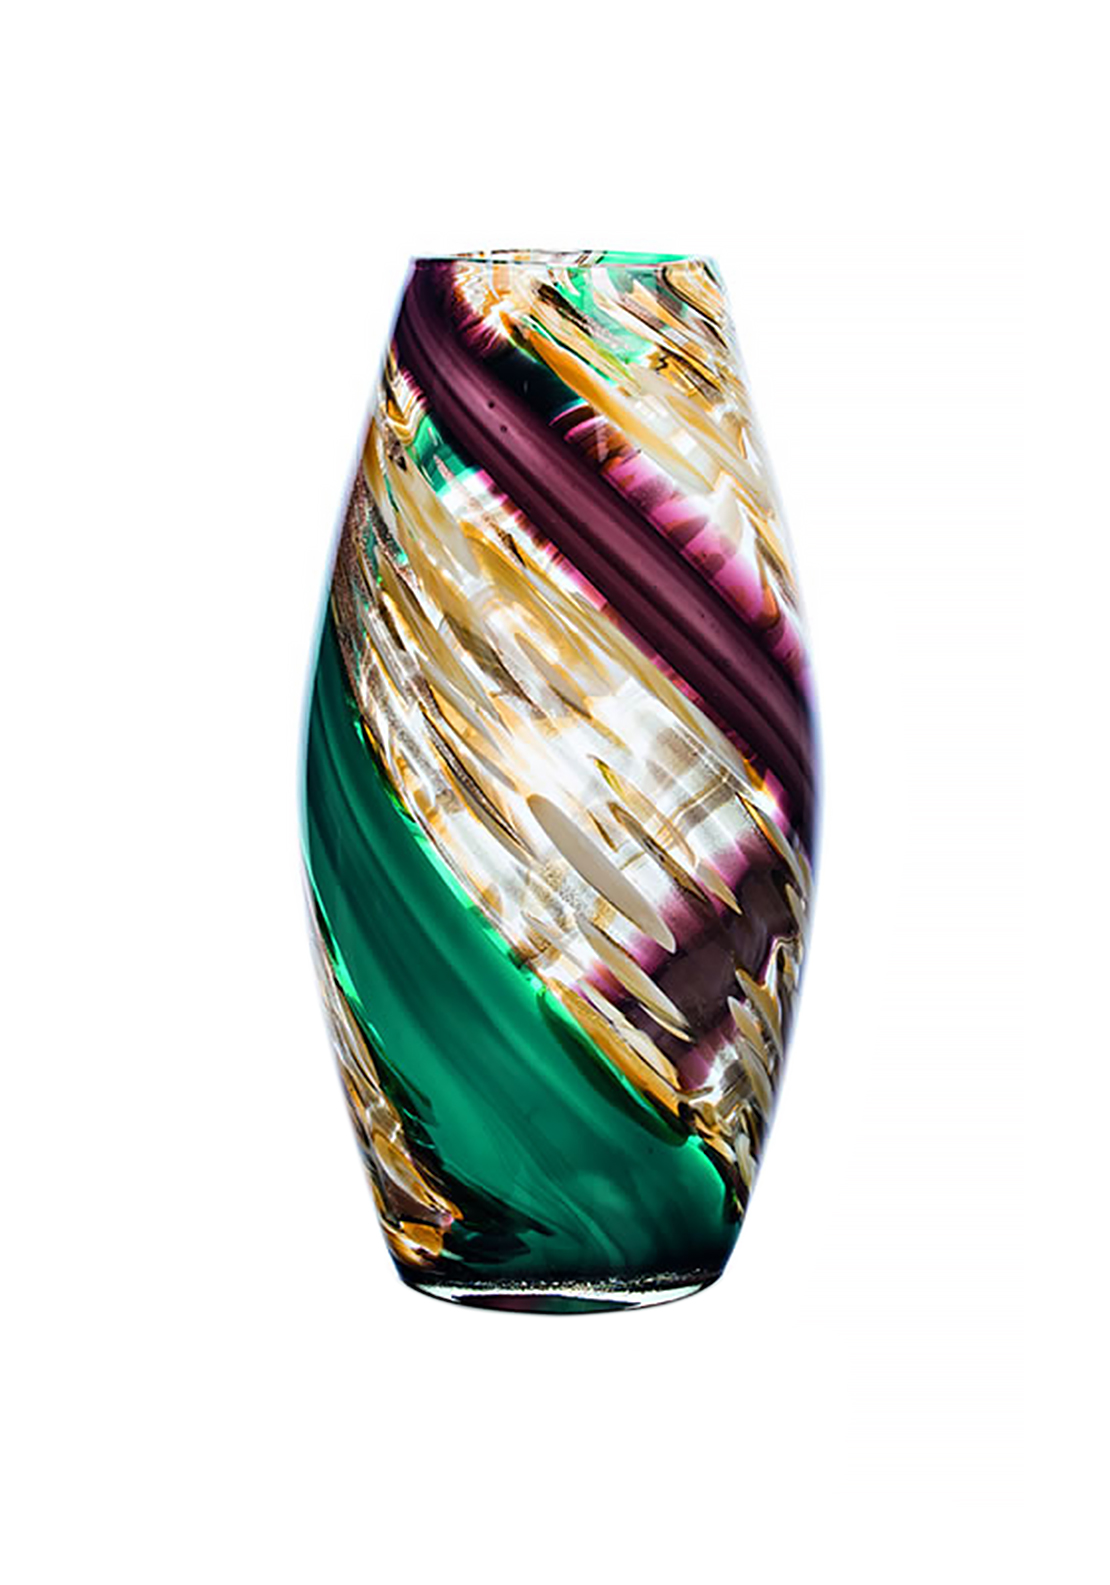 Newgrange Living Purple Teal Oval Vase, Multi